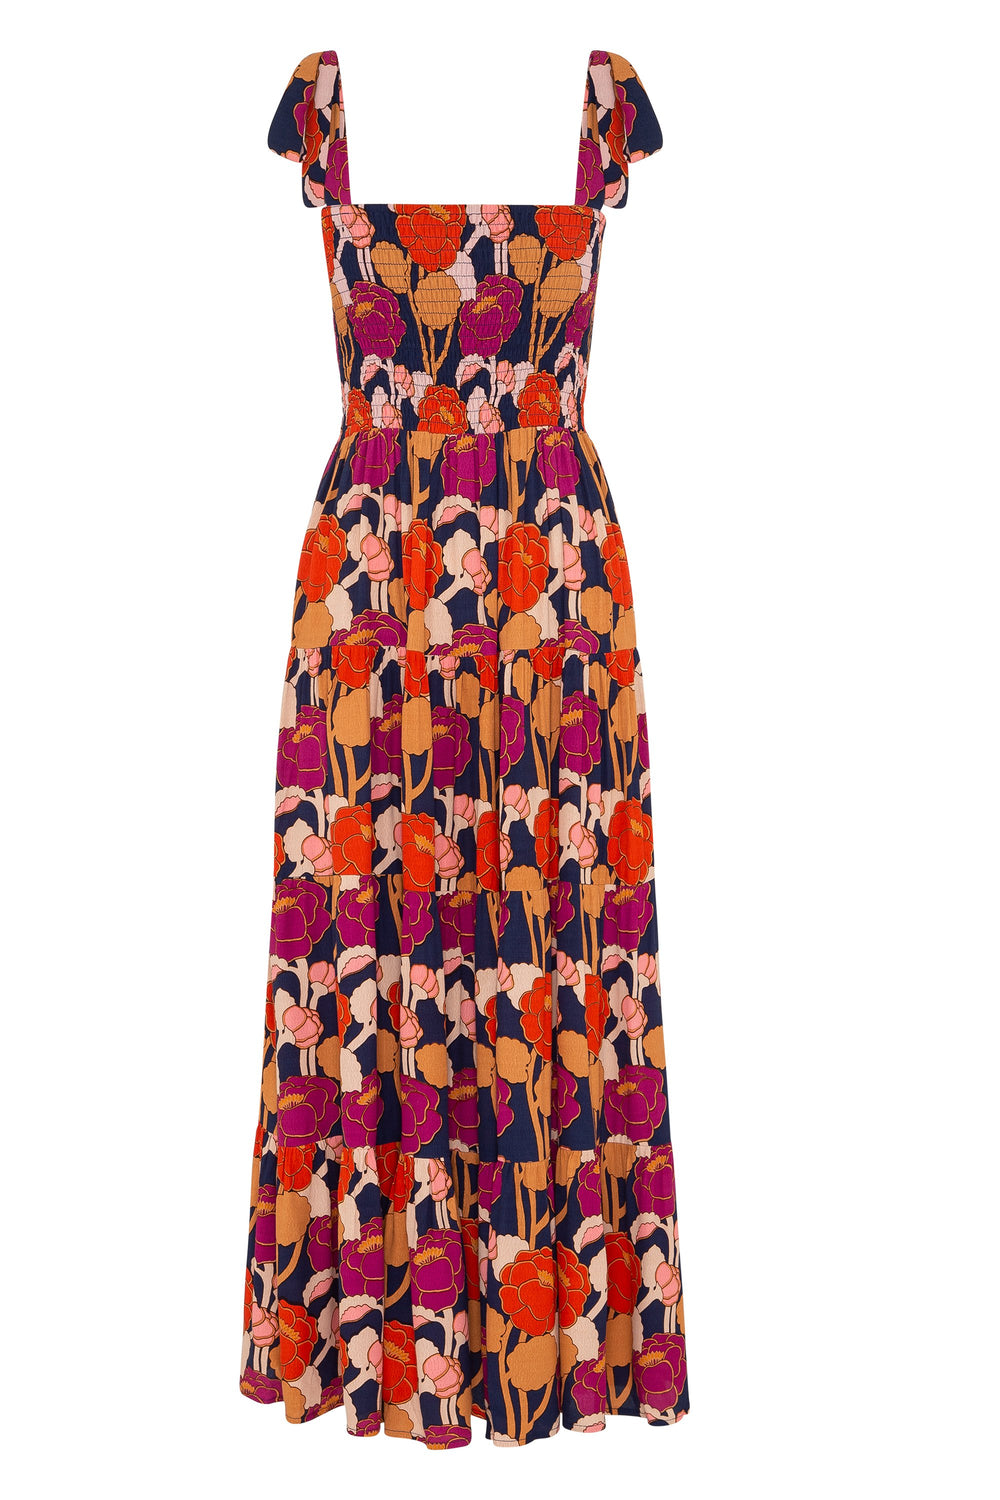 Savannah Tie Dress In Oasis